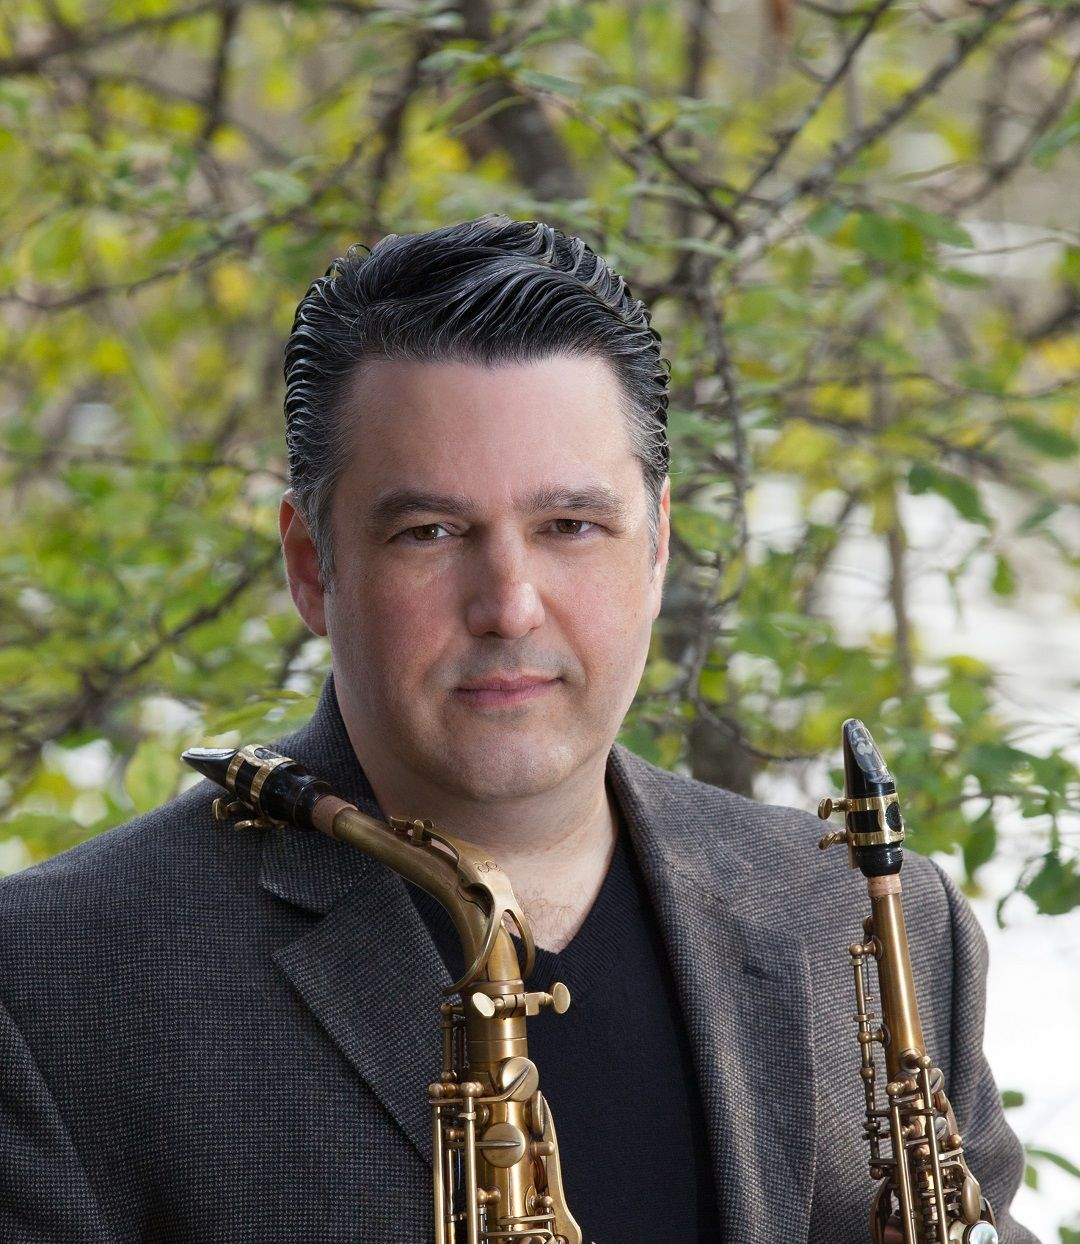 Todd Oxford joins the NTSO for Dubussy's Rhapsodie for Orchestra and Saxophone.